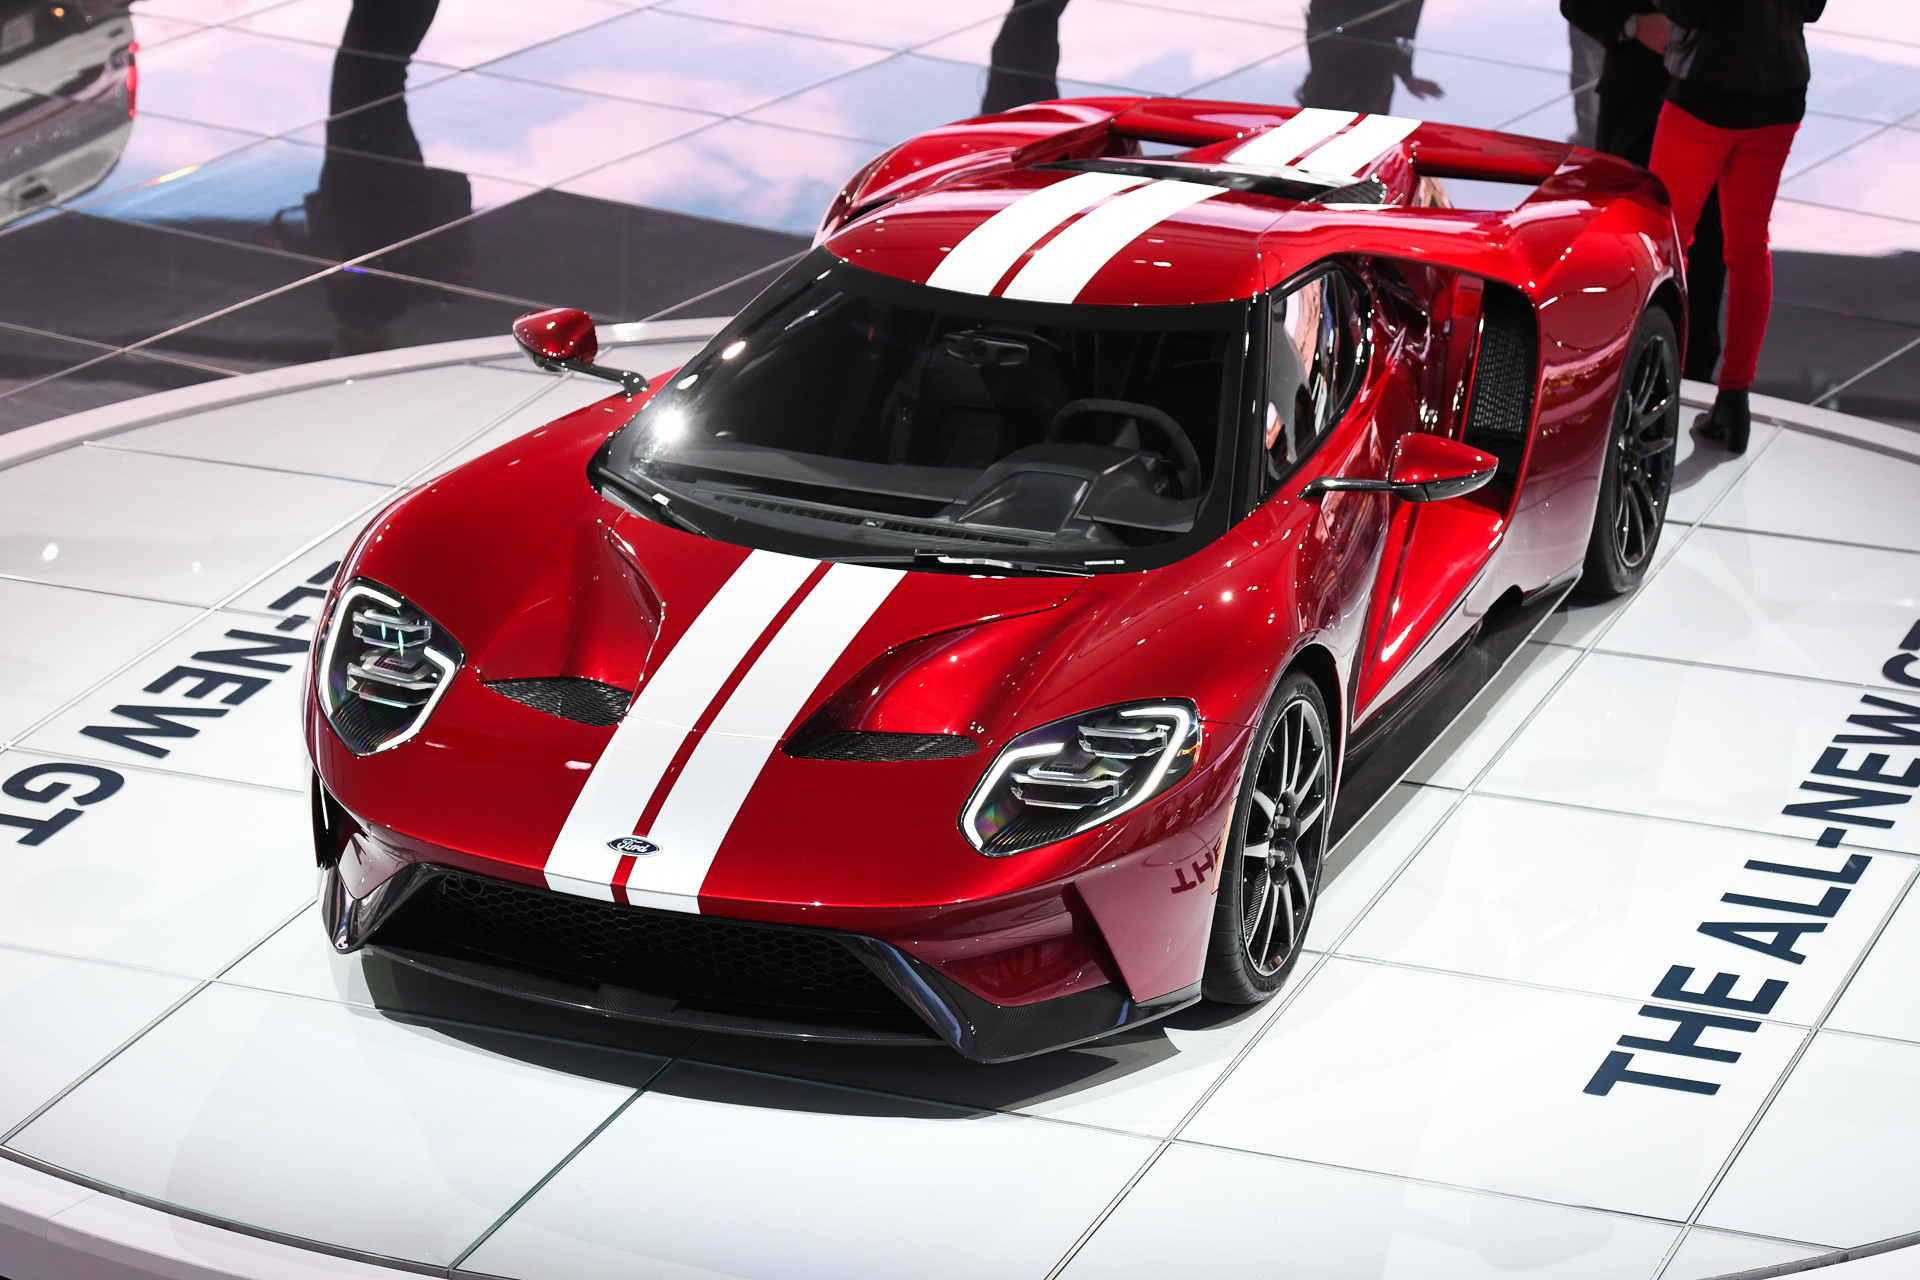 2017 ford gt confirmed with 647 hp 216 mph top speed. Black Bedroom Furniture Sets. Home Design Ideas